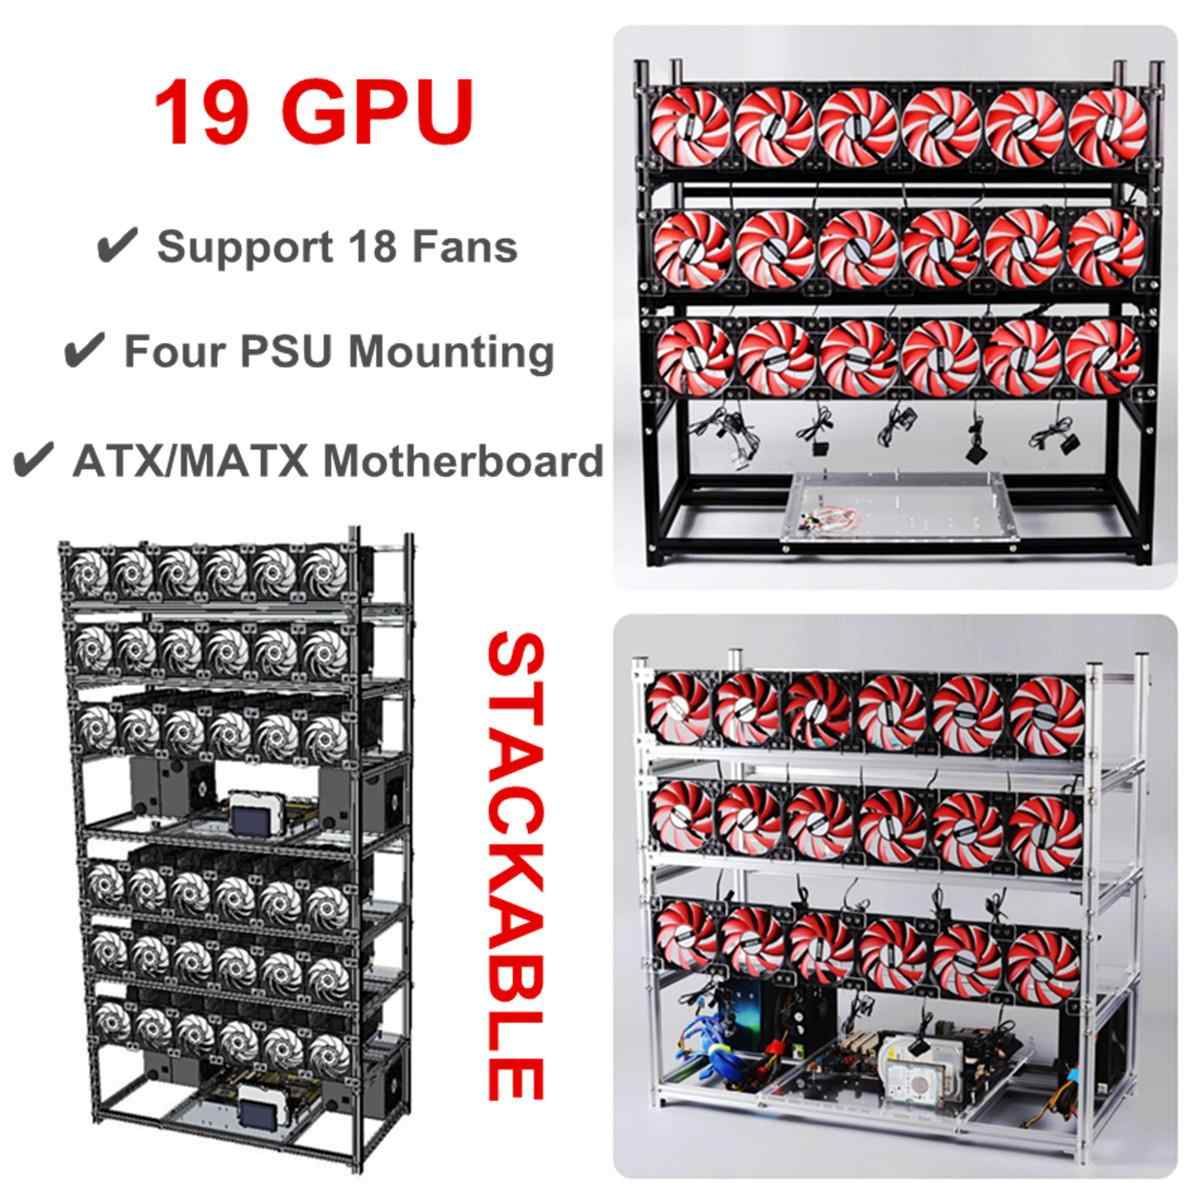 19 GPU Graphics Card Chassis Rack Open Air Mining Case Computer Graphics Chassis Frame Miner Frame Rig Temp Monitor +18pcs Fan